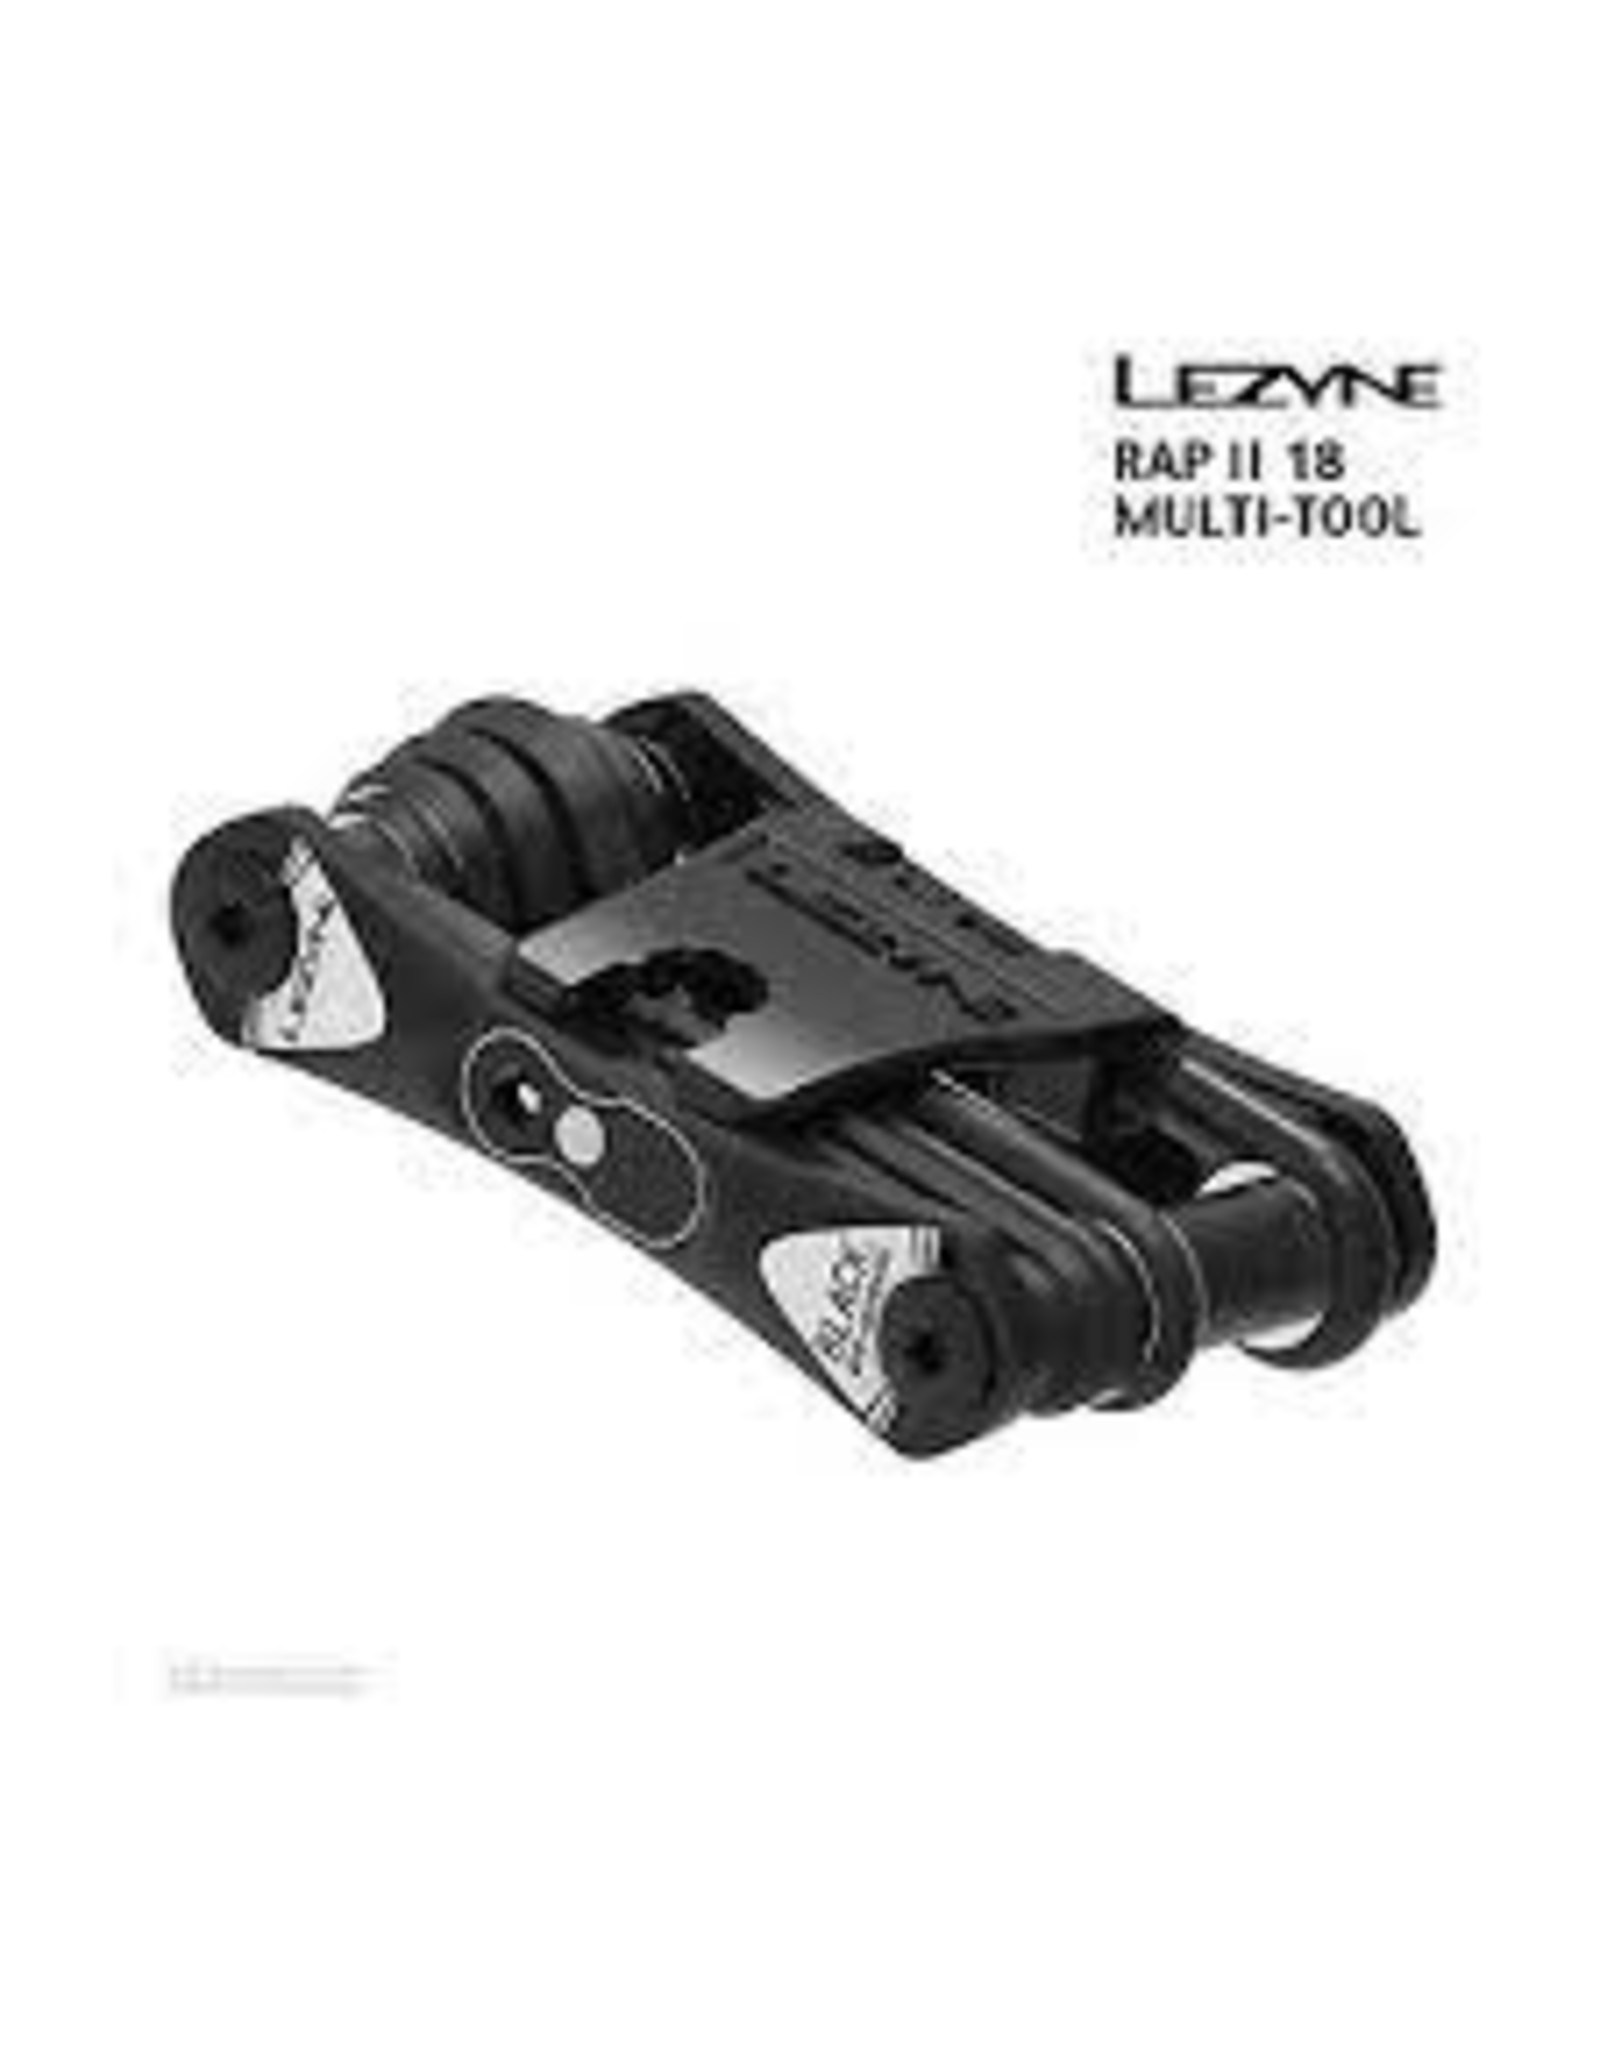 LEZYNE RAP II 18 MULTI TOOL BLACK